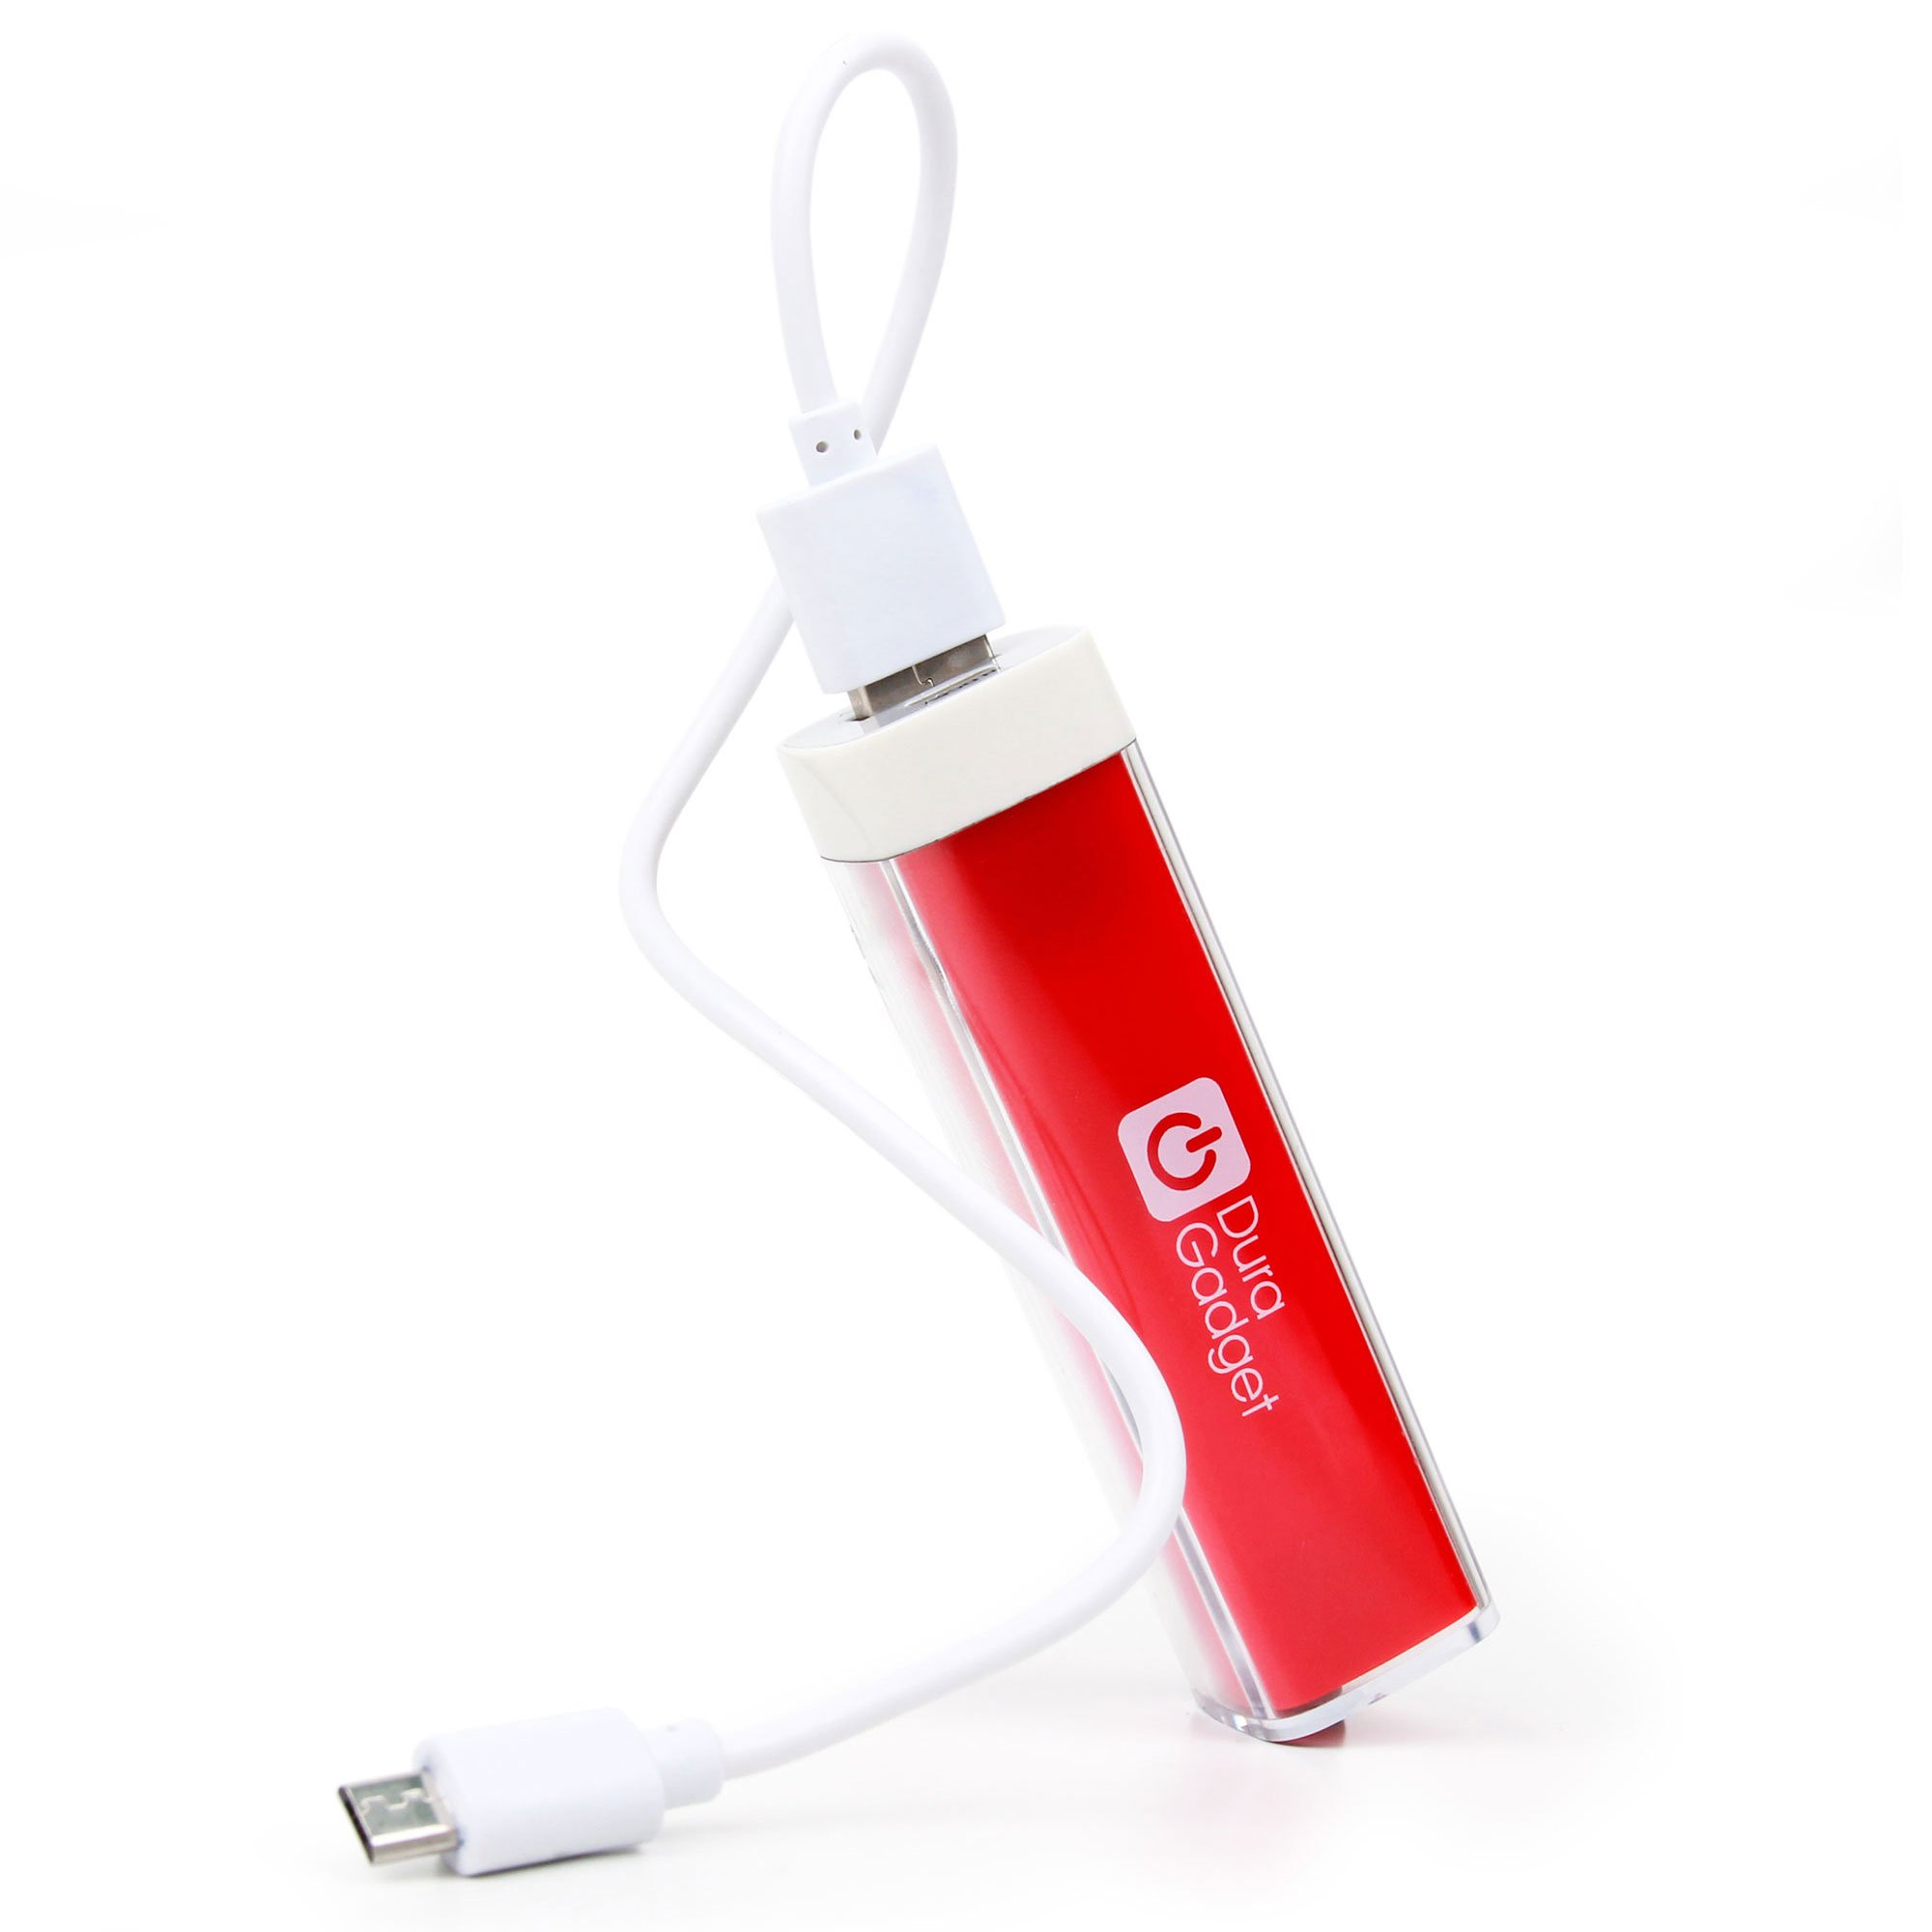 DURAGADGET High Capacity Universal Power Bank in Bright Red - Compatible with Leapfrog LeapPad, Explorer, Platinum, Epic, Leapster Tablets